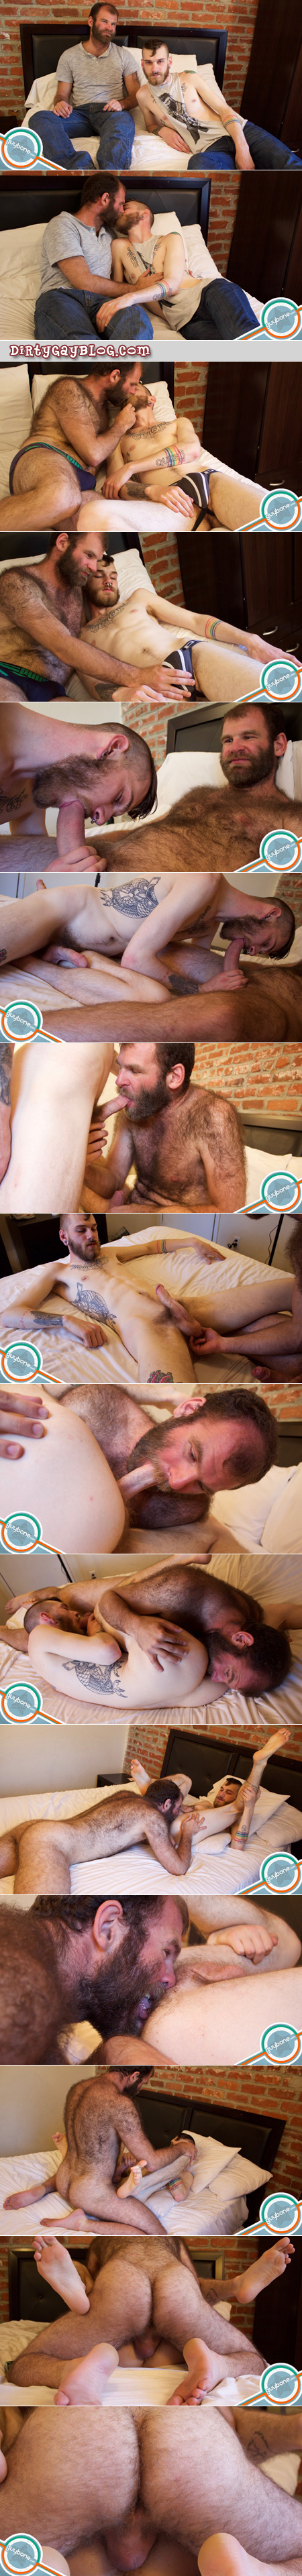 Extremely hairy cub fucking a tattooed and pierced man bareback.